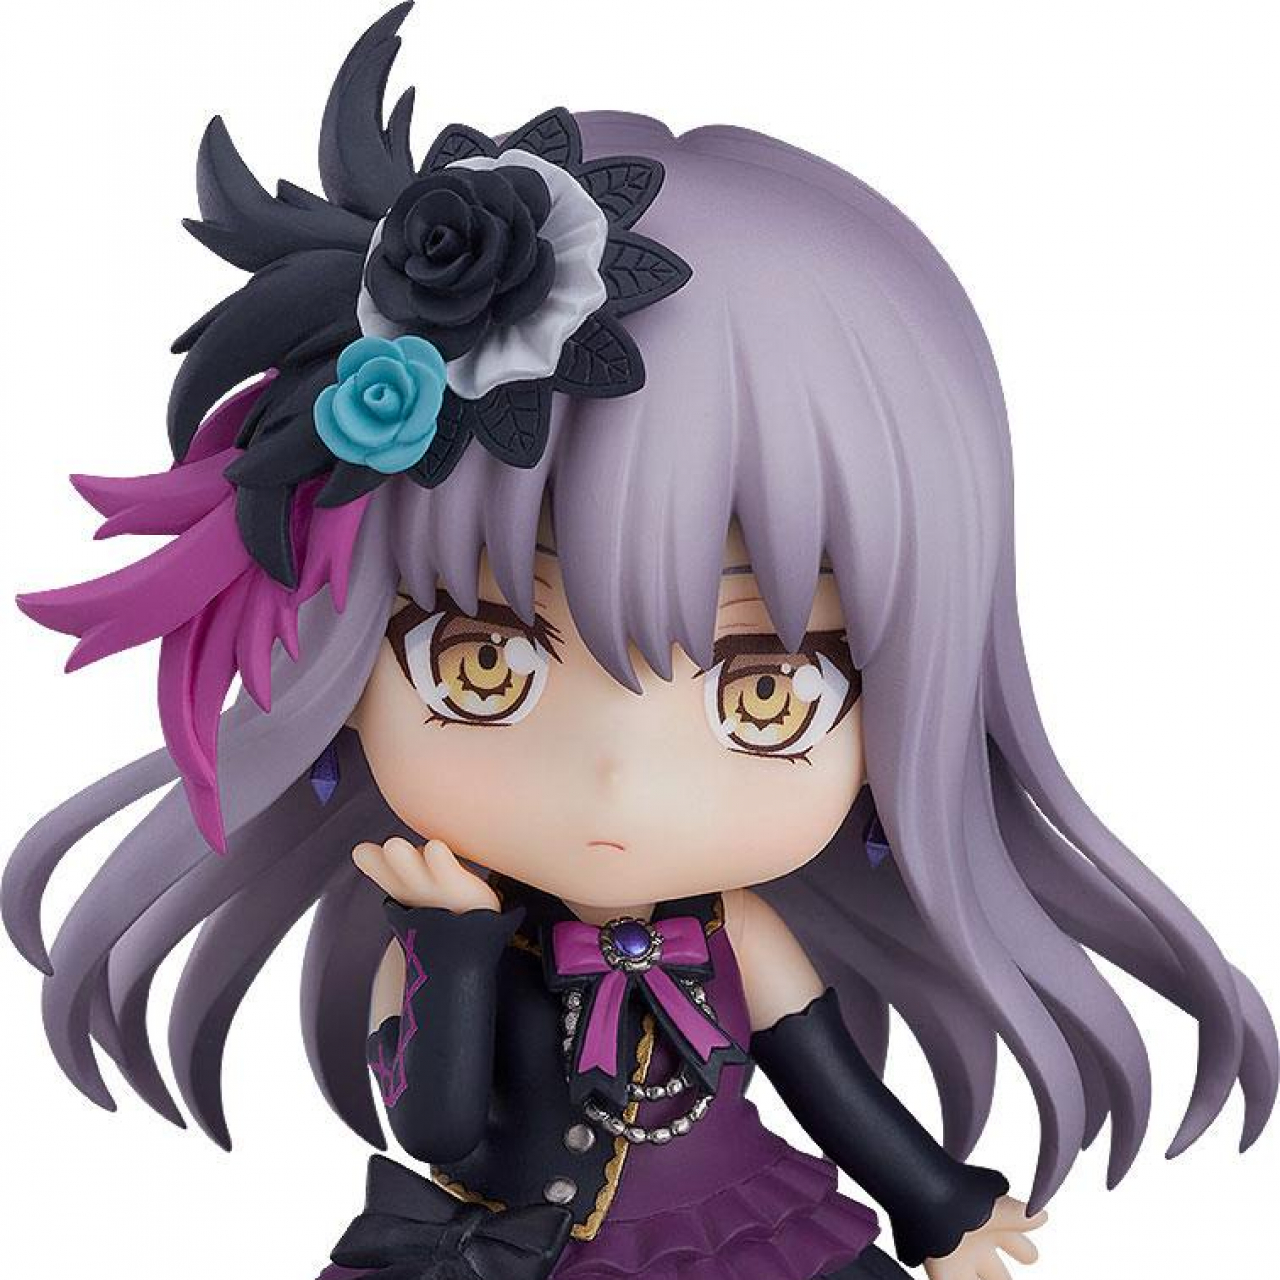 BanG Dream! Girls Band Party! Nendoroid Action Figure Yukina Minato Stage Outfit Ver. 10 cm